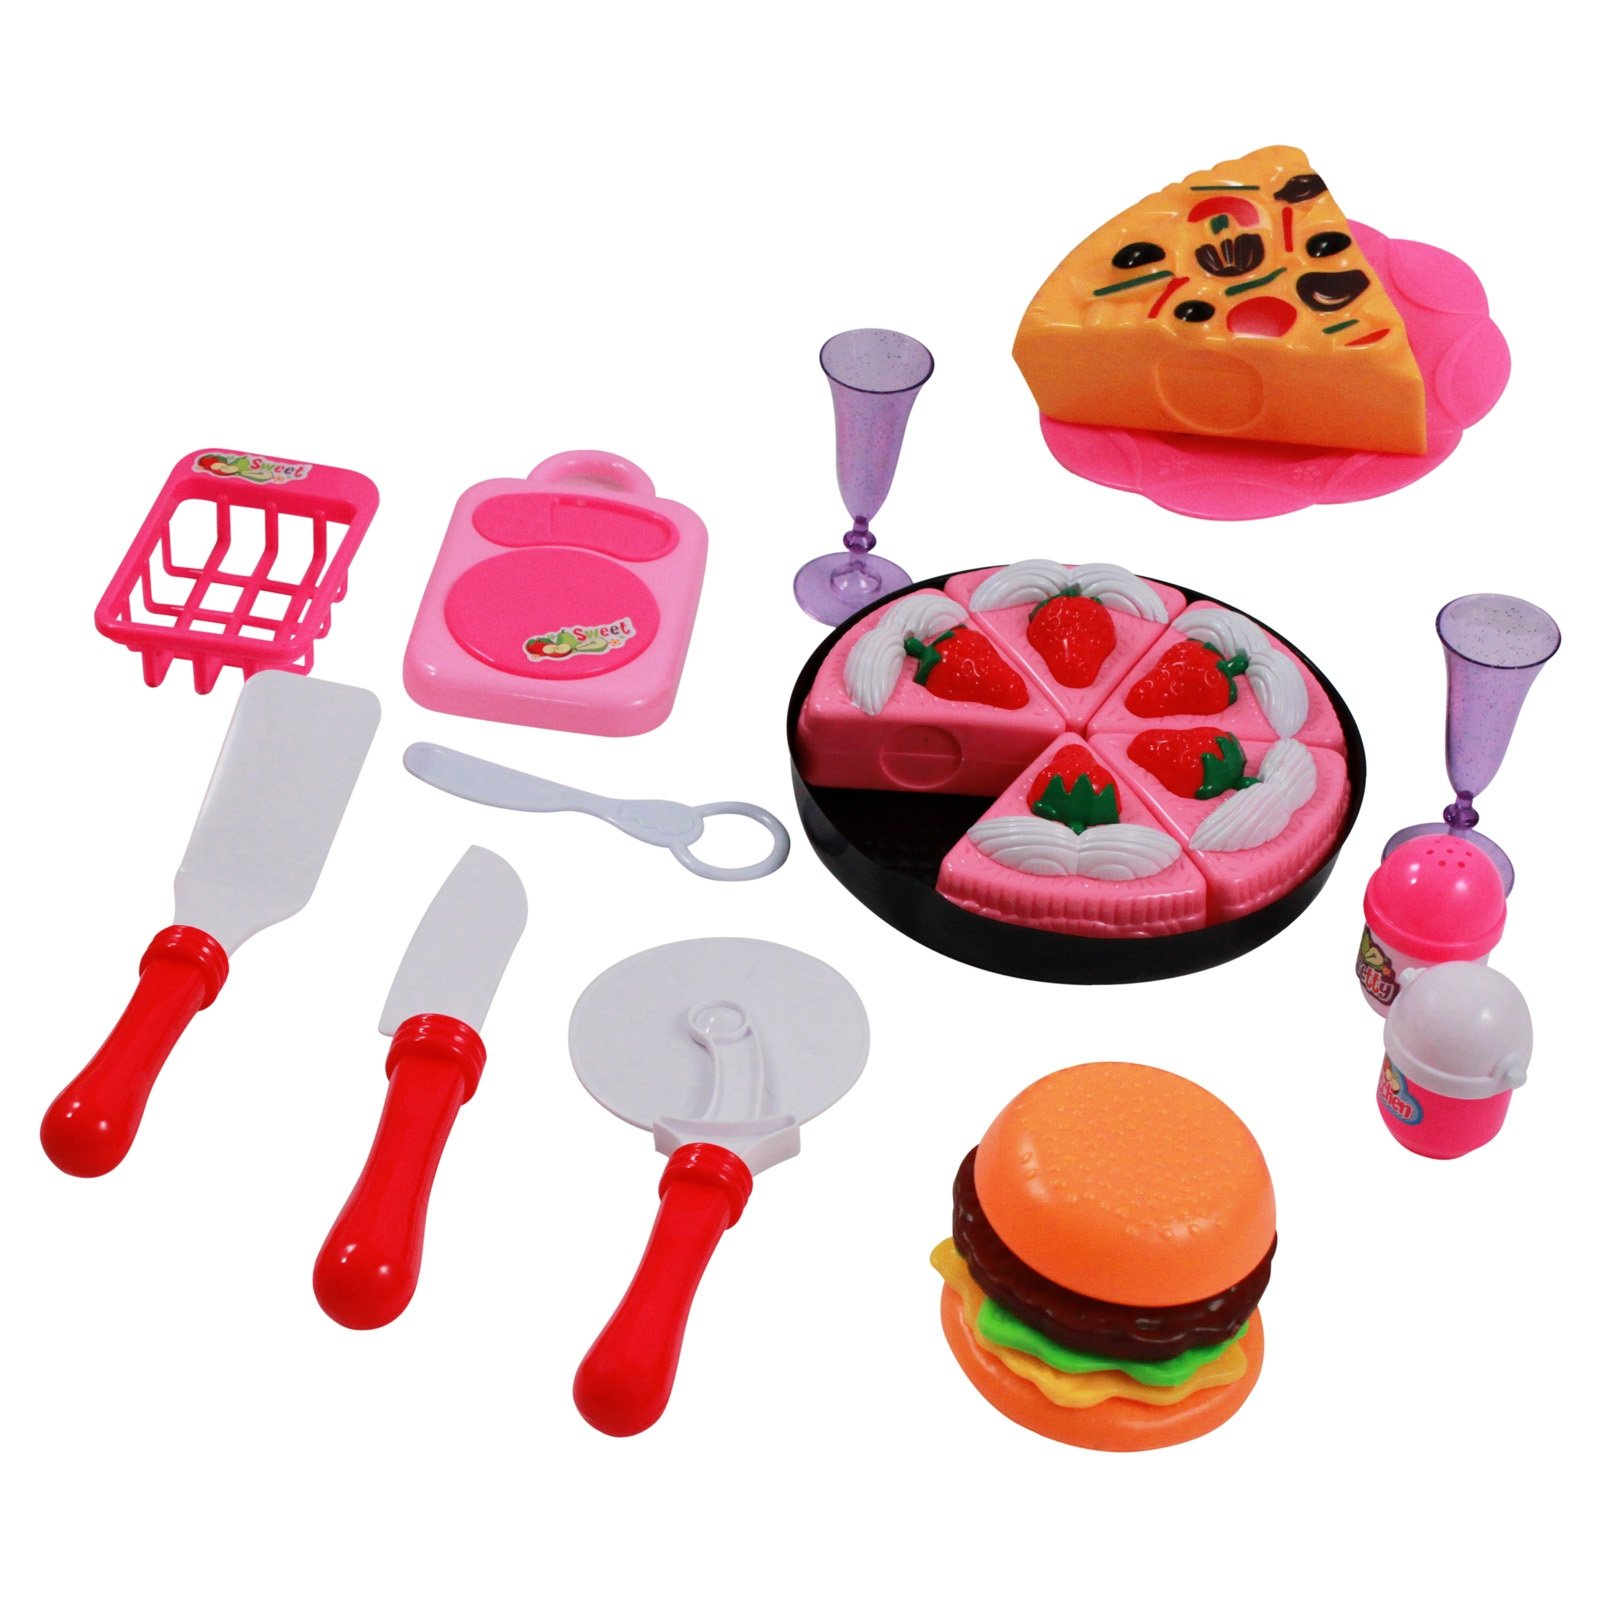 Kidfun Pretend Play Kitchen Playhouse Chef Set